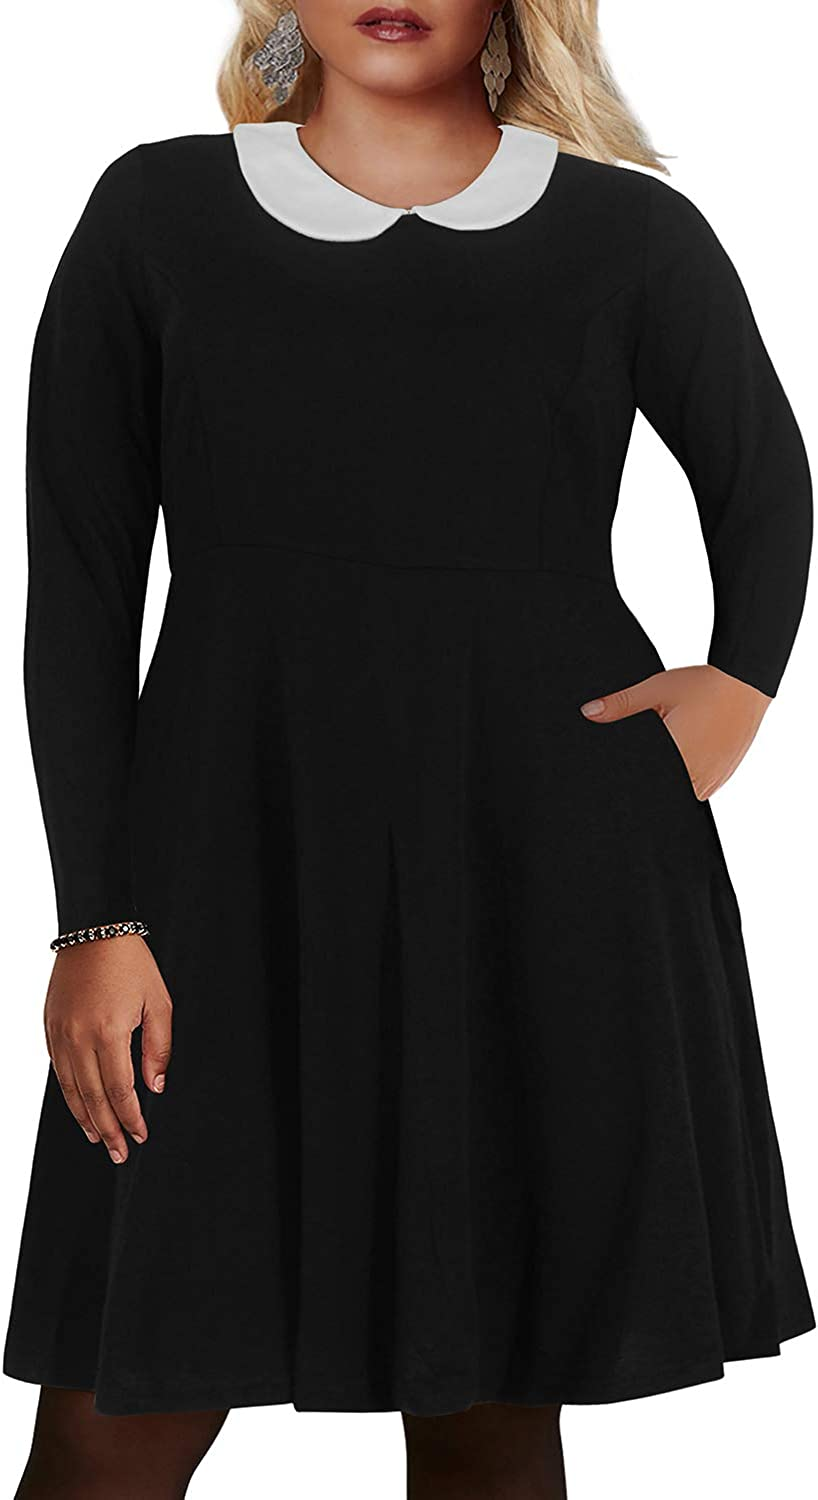 Nemidor Women's Peter Pan Collar Fit and Flare Plus Size Skater Party Dress